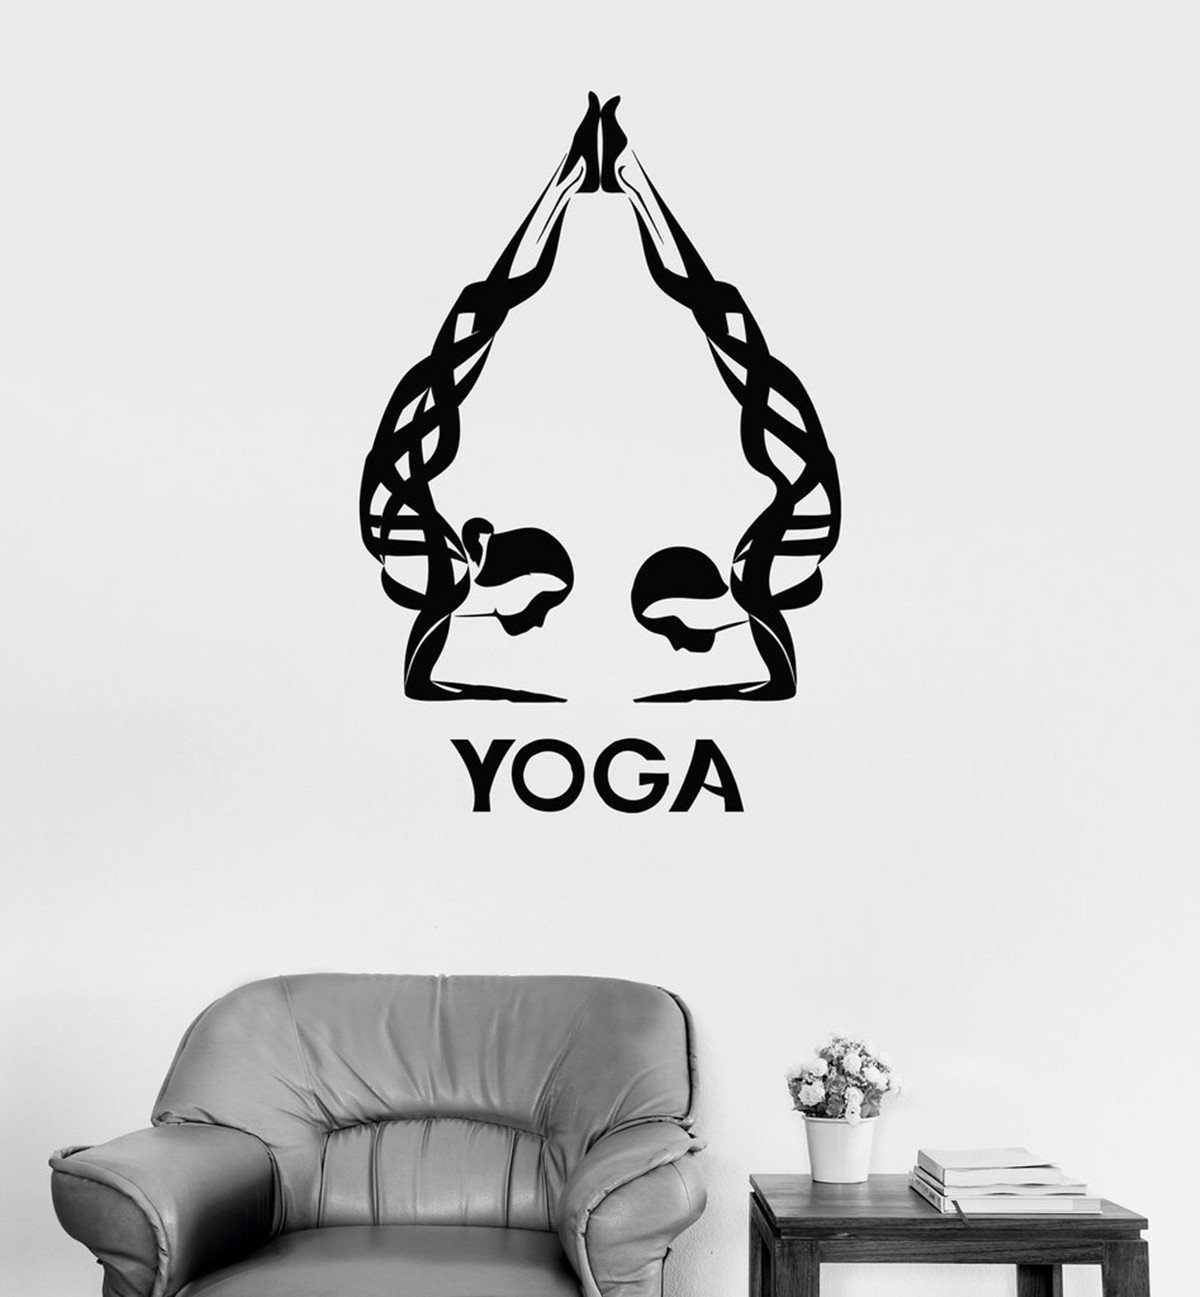 BorisMotley Wall Decal Spa Yoga Meditation Woman Vinyl Removable Mural Art Decoration Stickers for Home Bedroom Nursery Living Room Kitchen